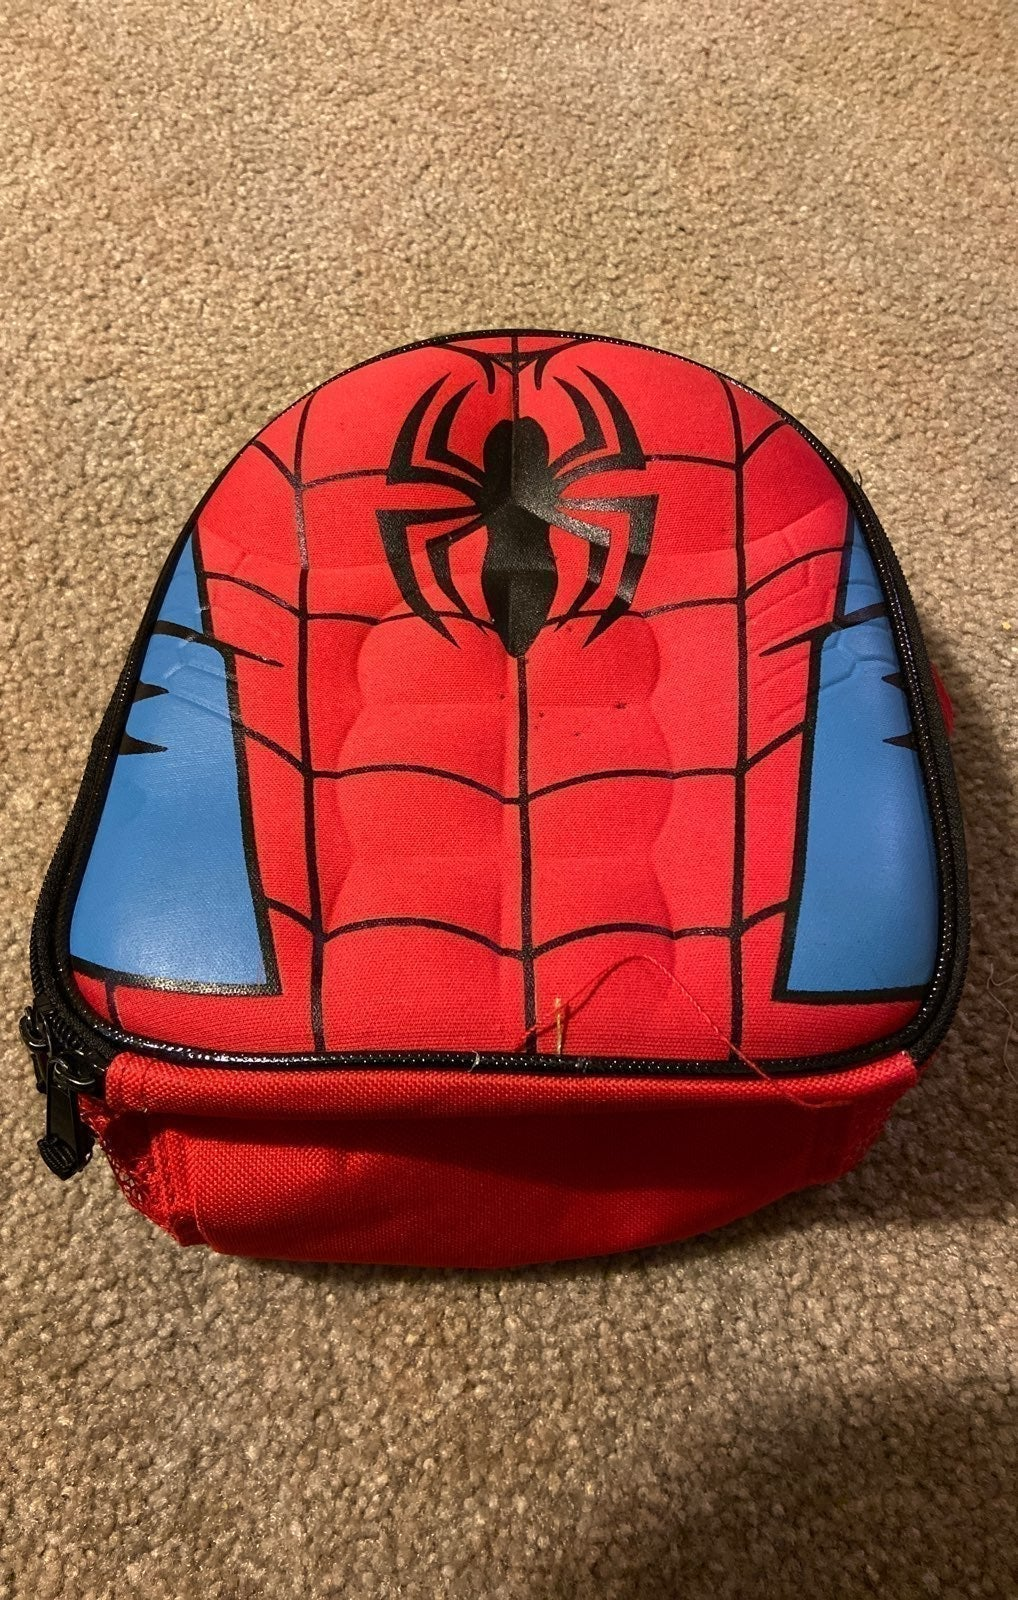 Spiderman Small Carrying Bag!!